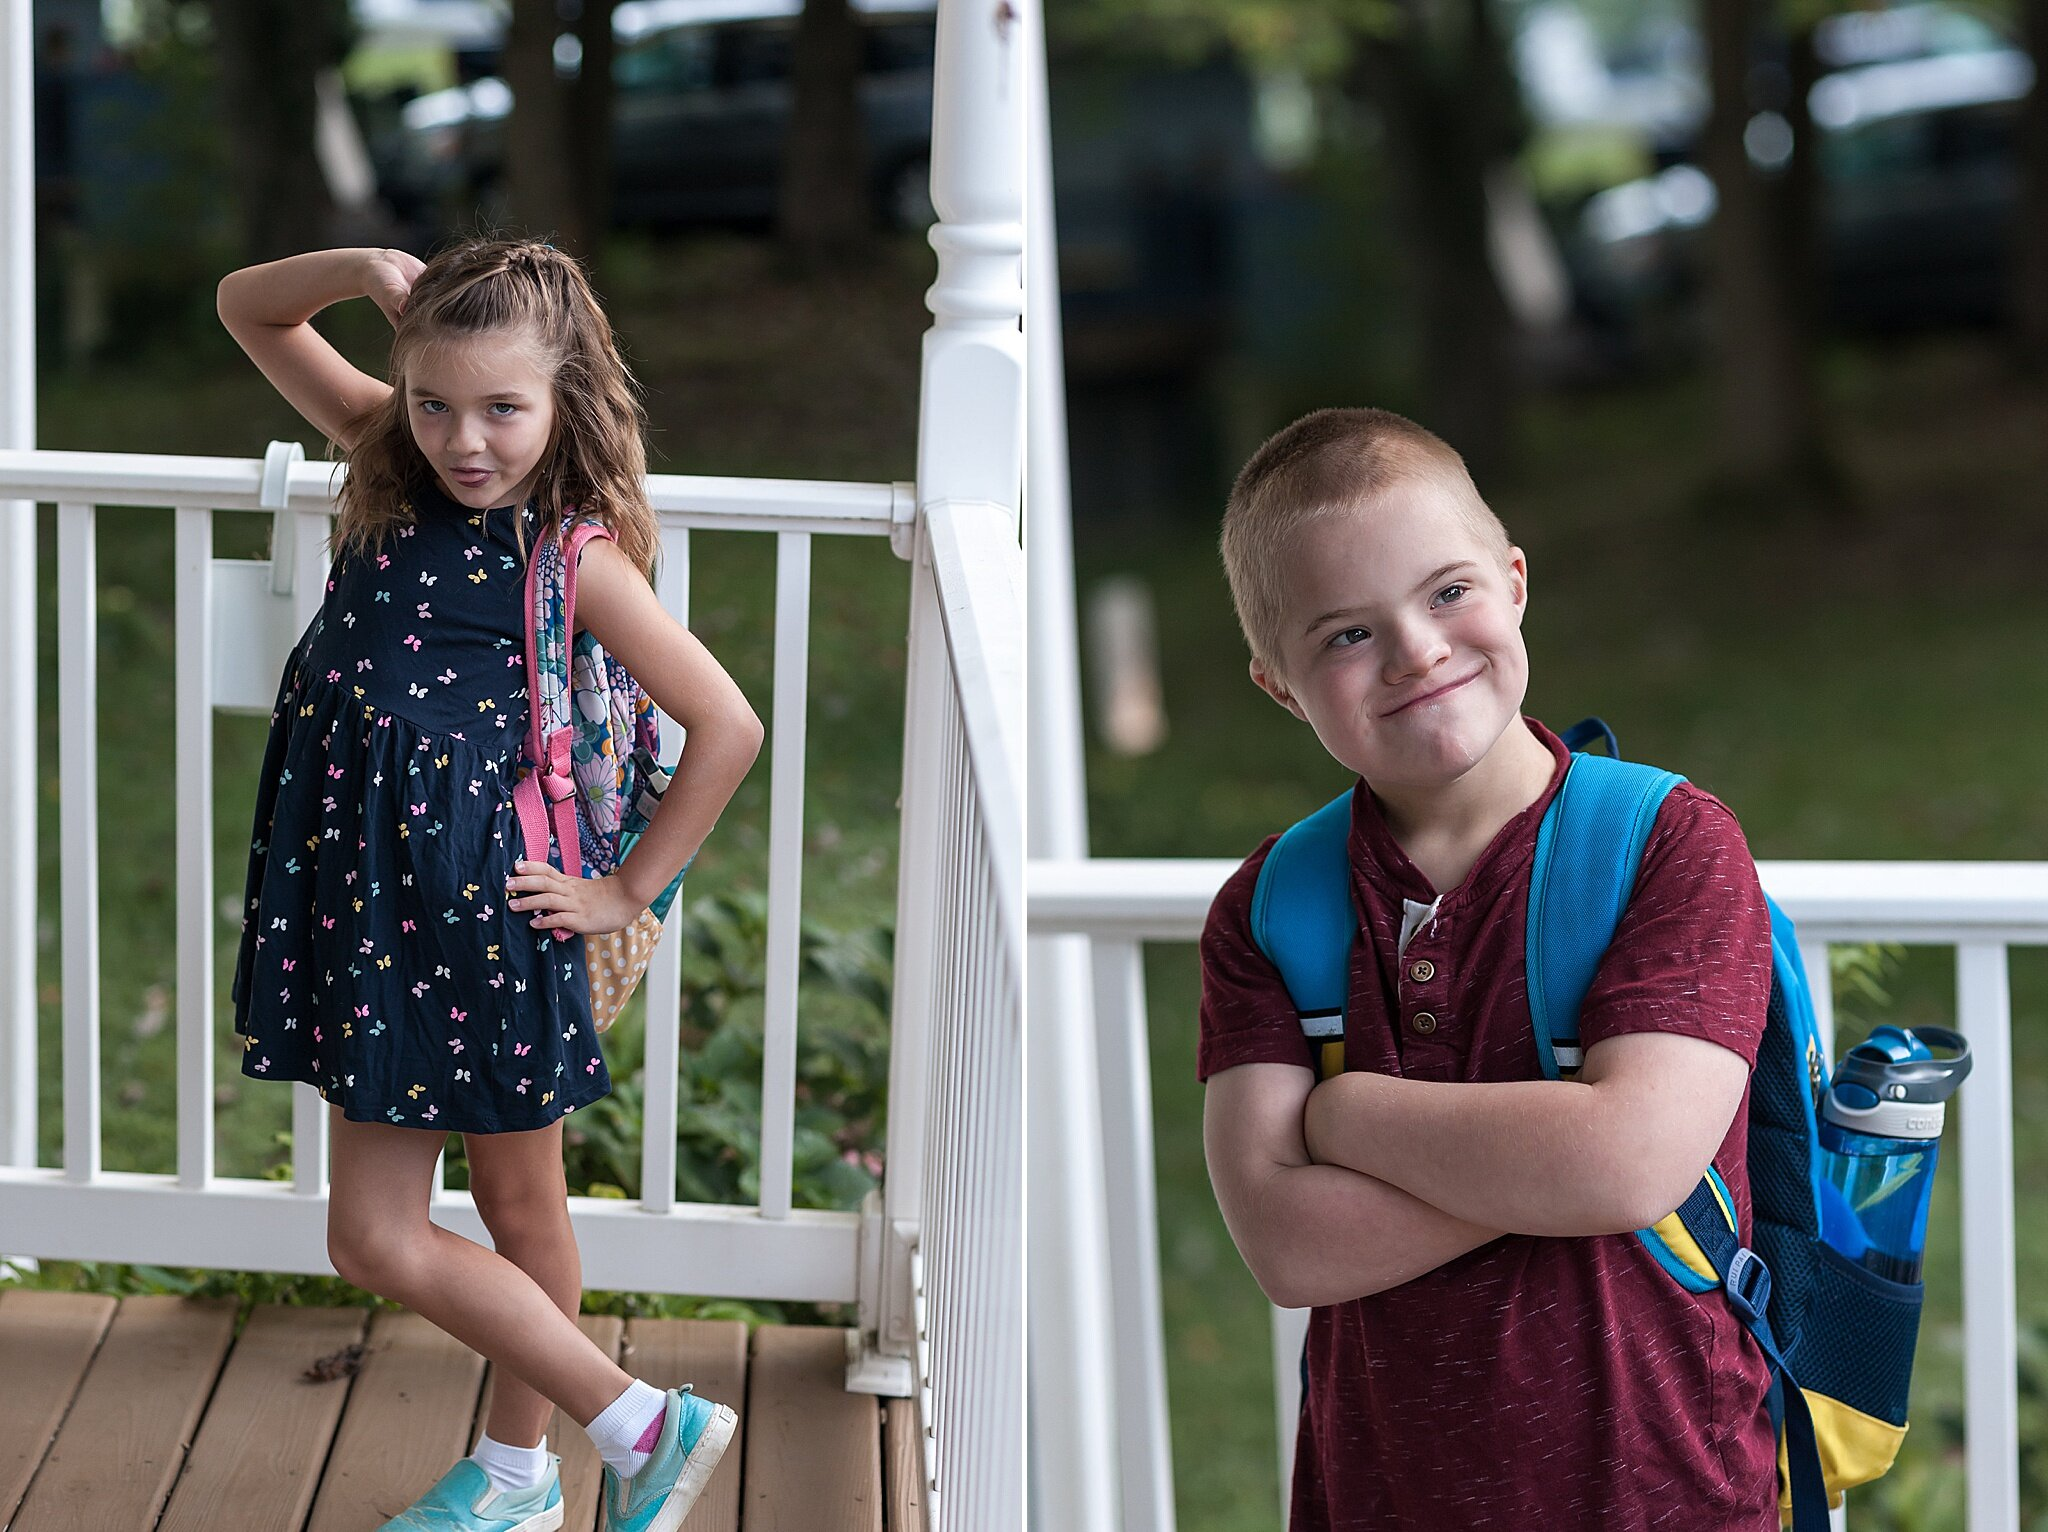 Wendy Zook Photography | First day of school photos